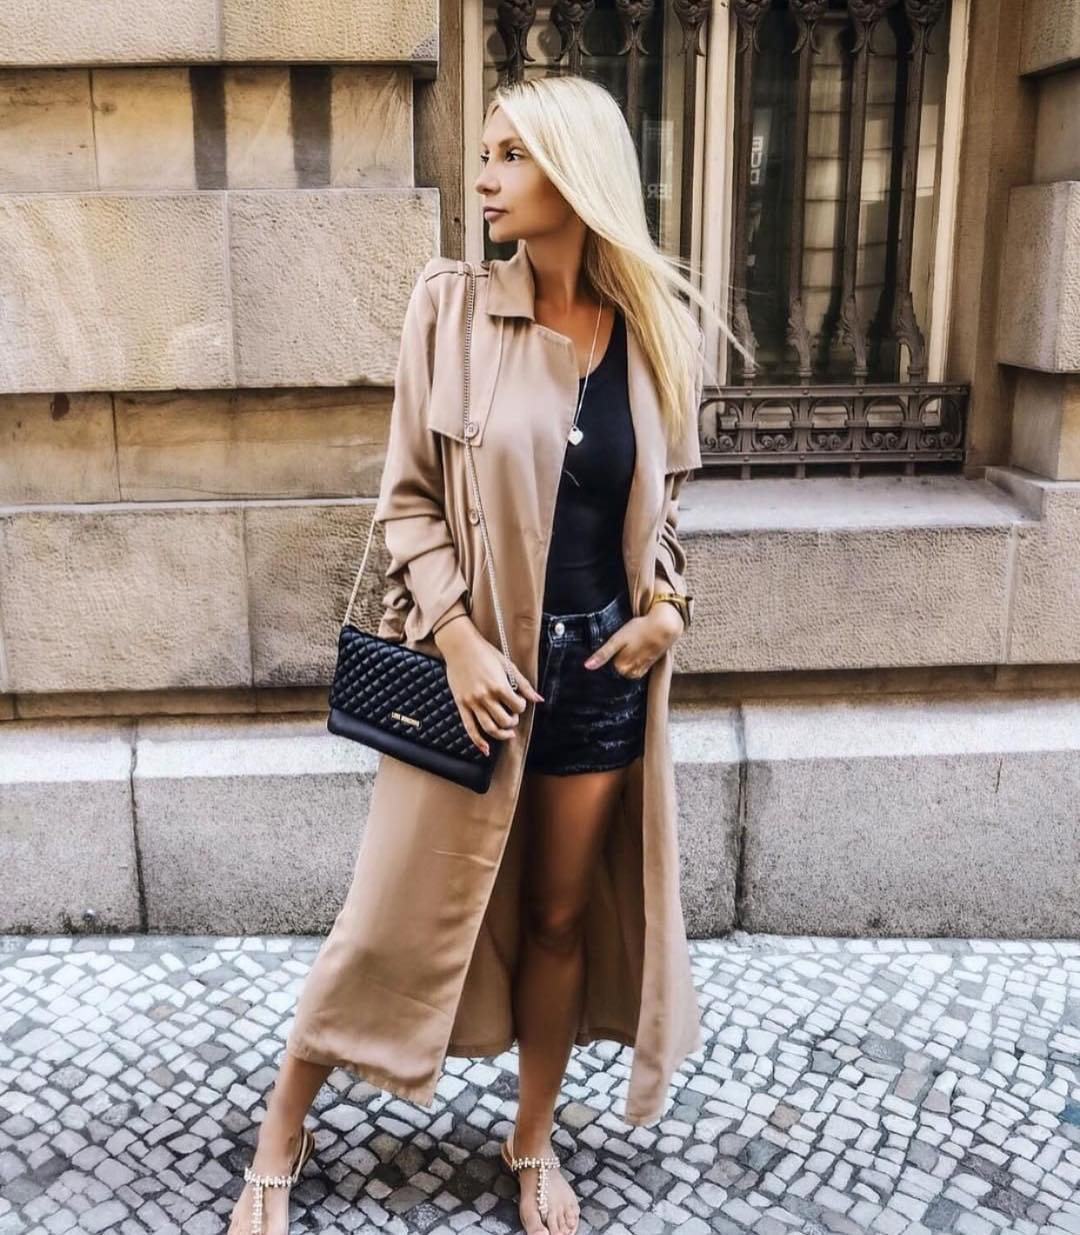 Maxi Trench Coat In Beige For Summer Chilly Days 2019